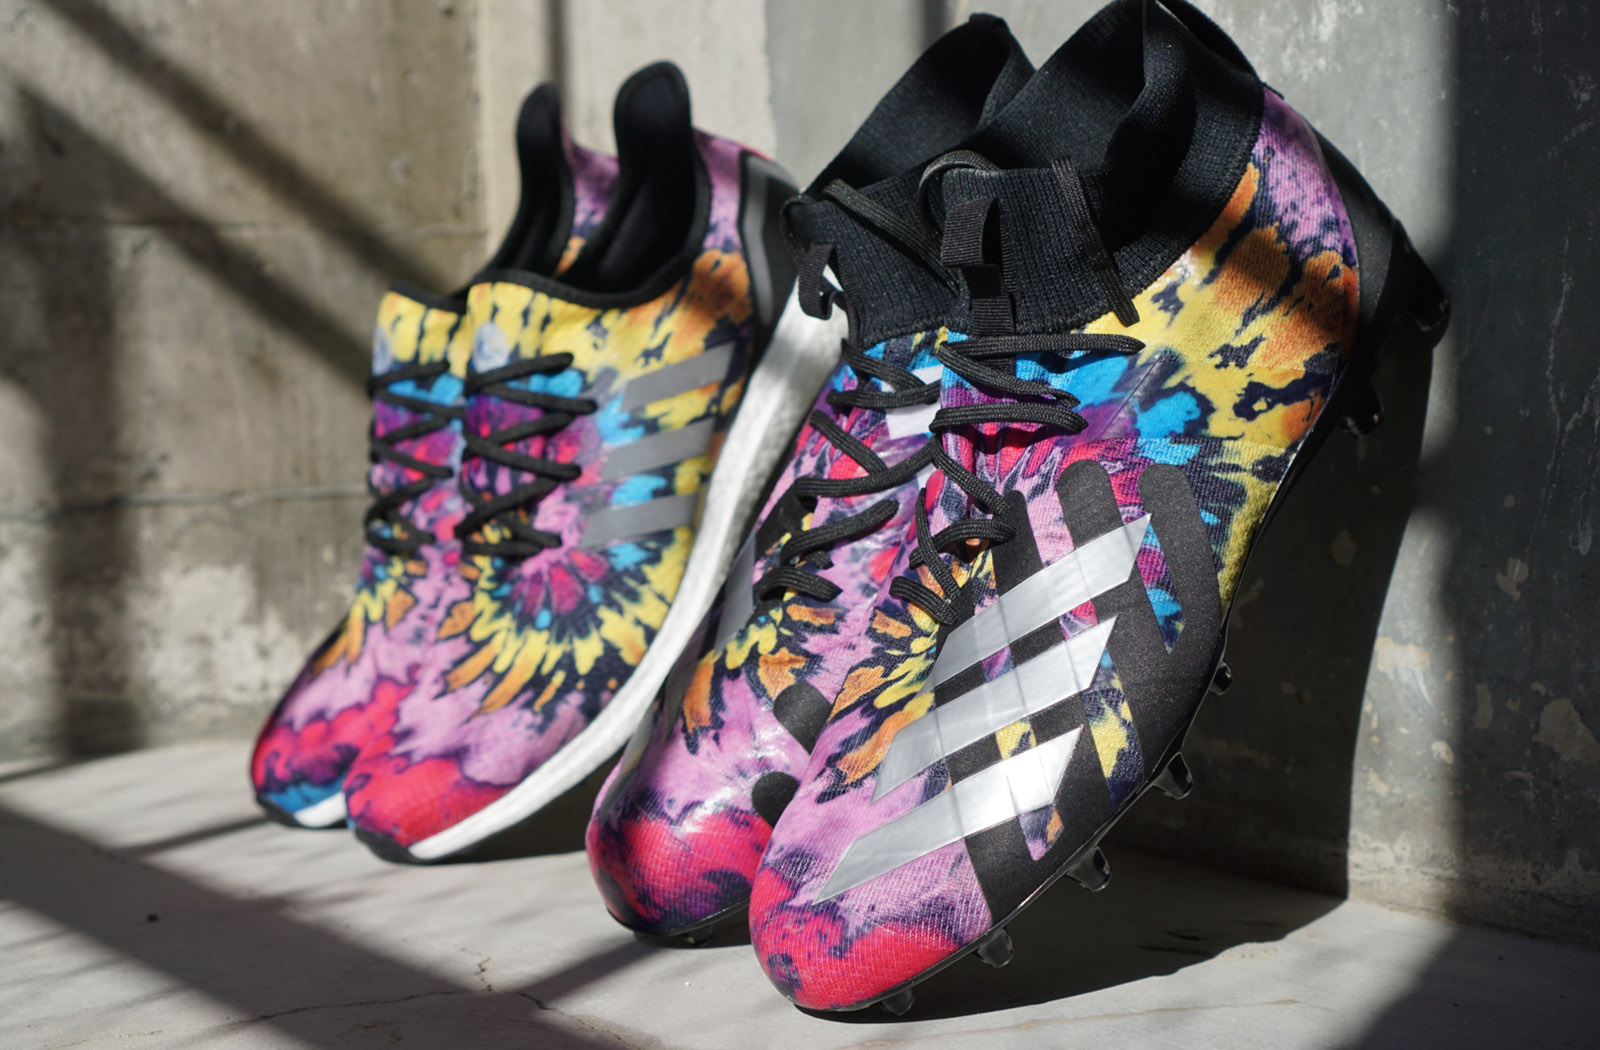 2019 adidas x FootLocker SPEEDFACTORY AM4ATL_Cleats & Shoes.jpg